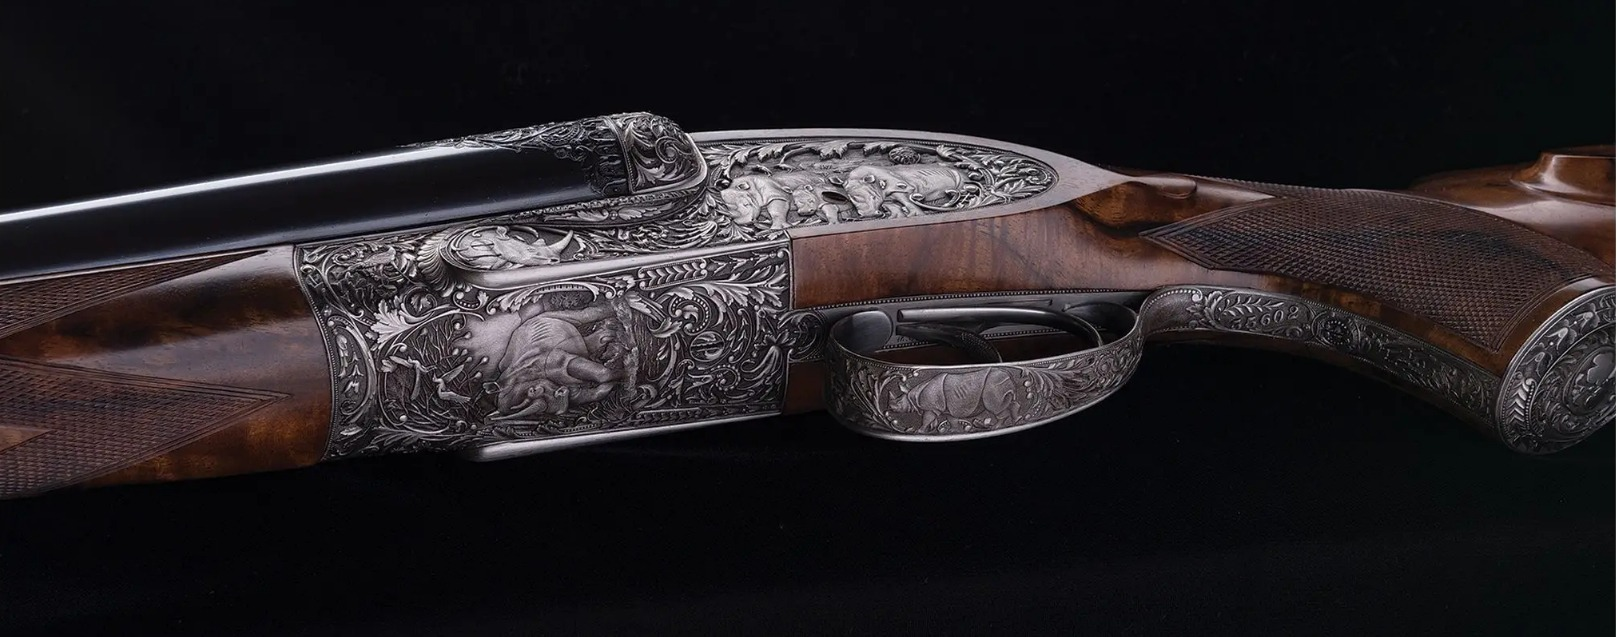 Holland and Holland Phillippe Grifnee engraved double rifle